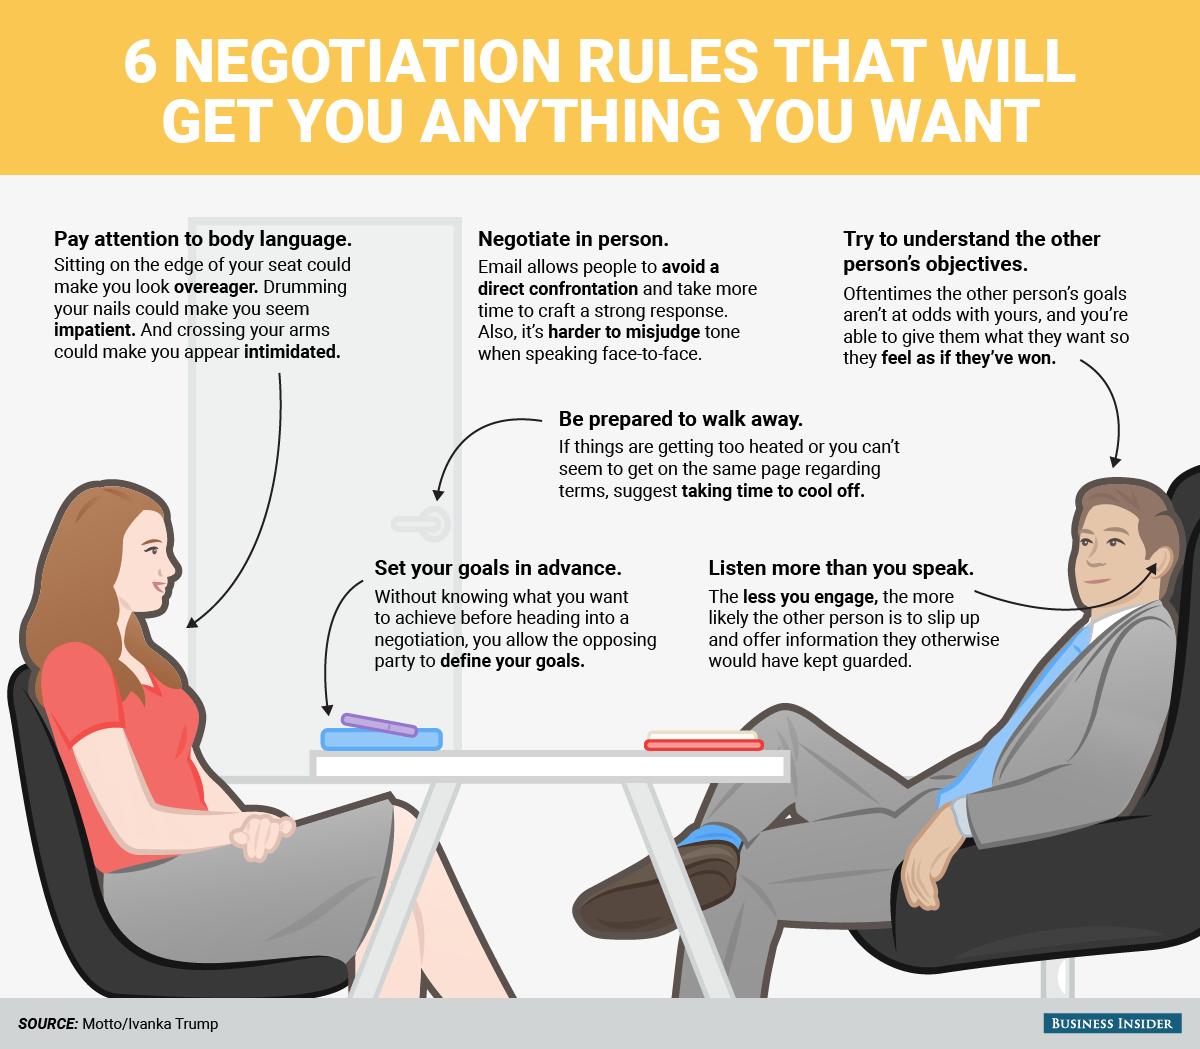 These  Negotiation Rules Can Get You Anything You Want  Business